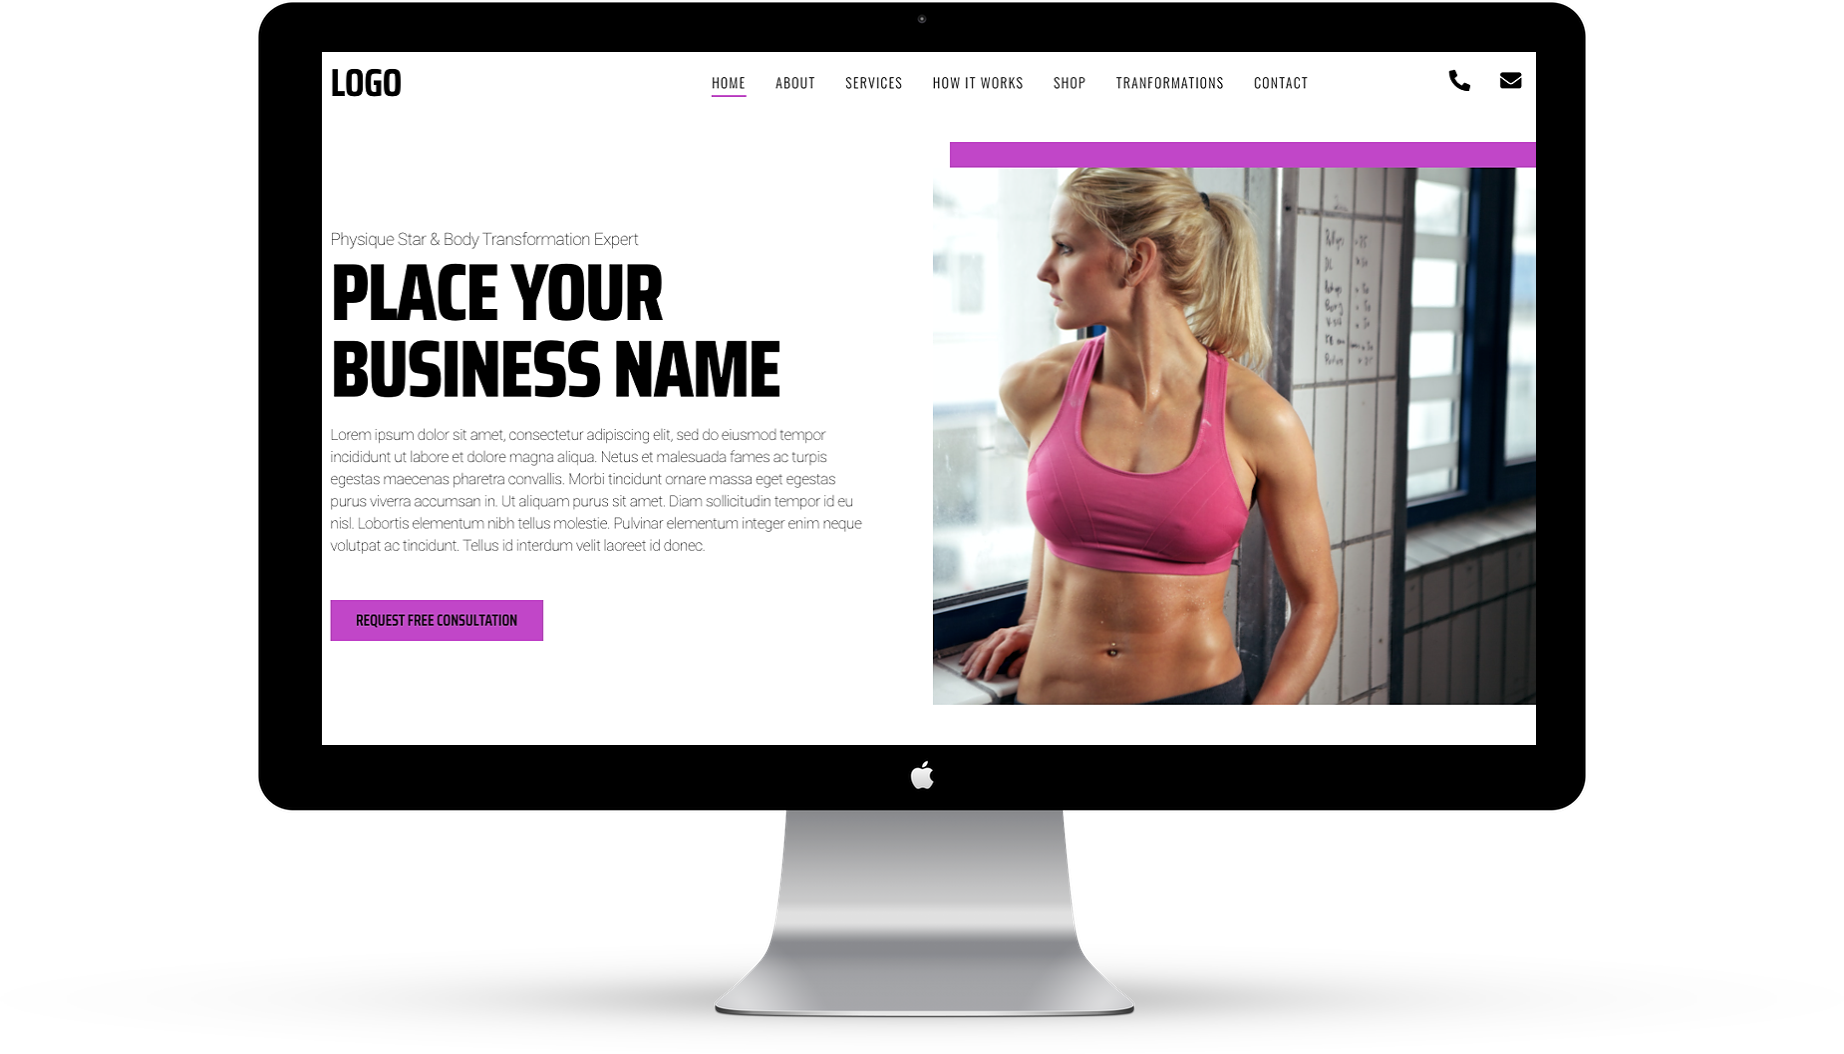 This is an image of Female website design